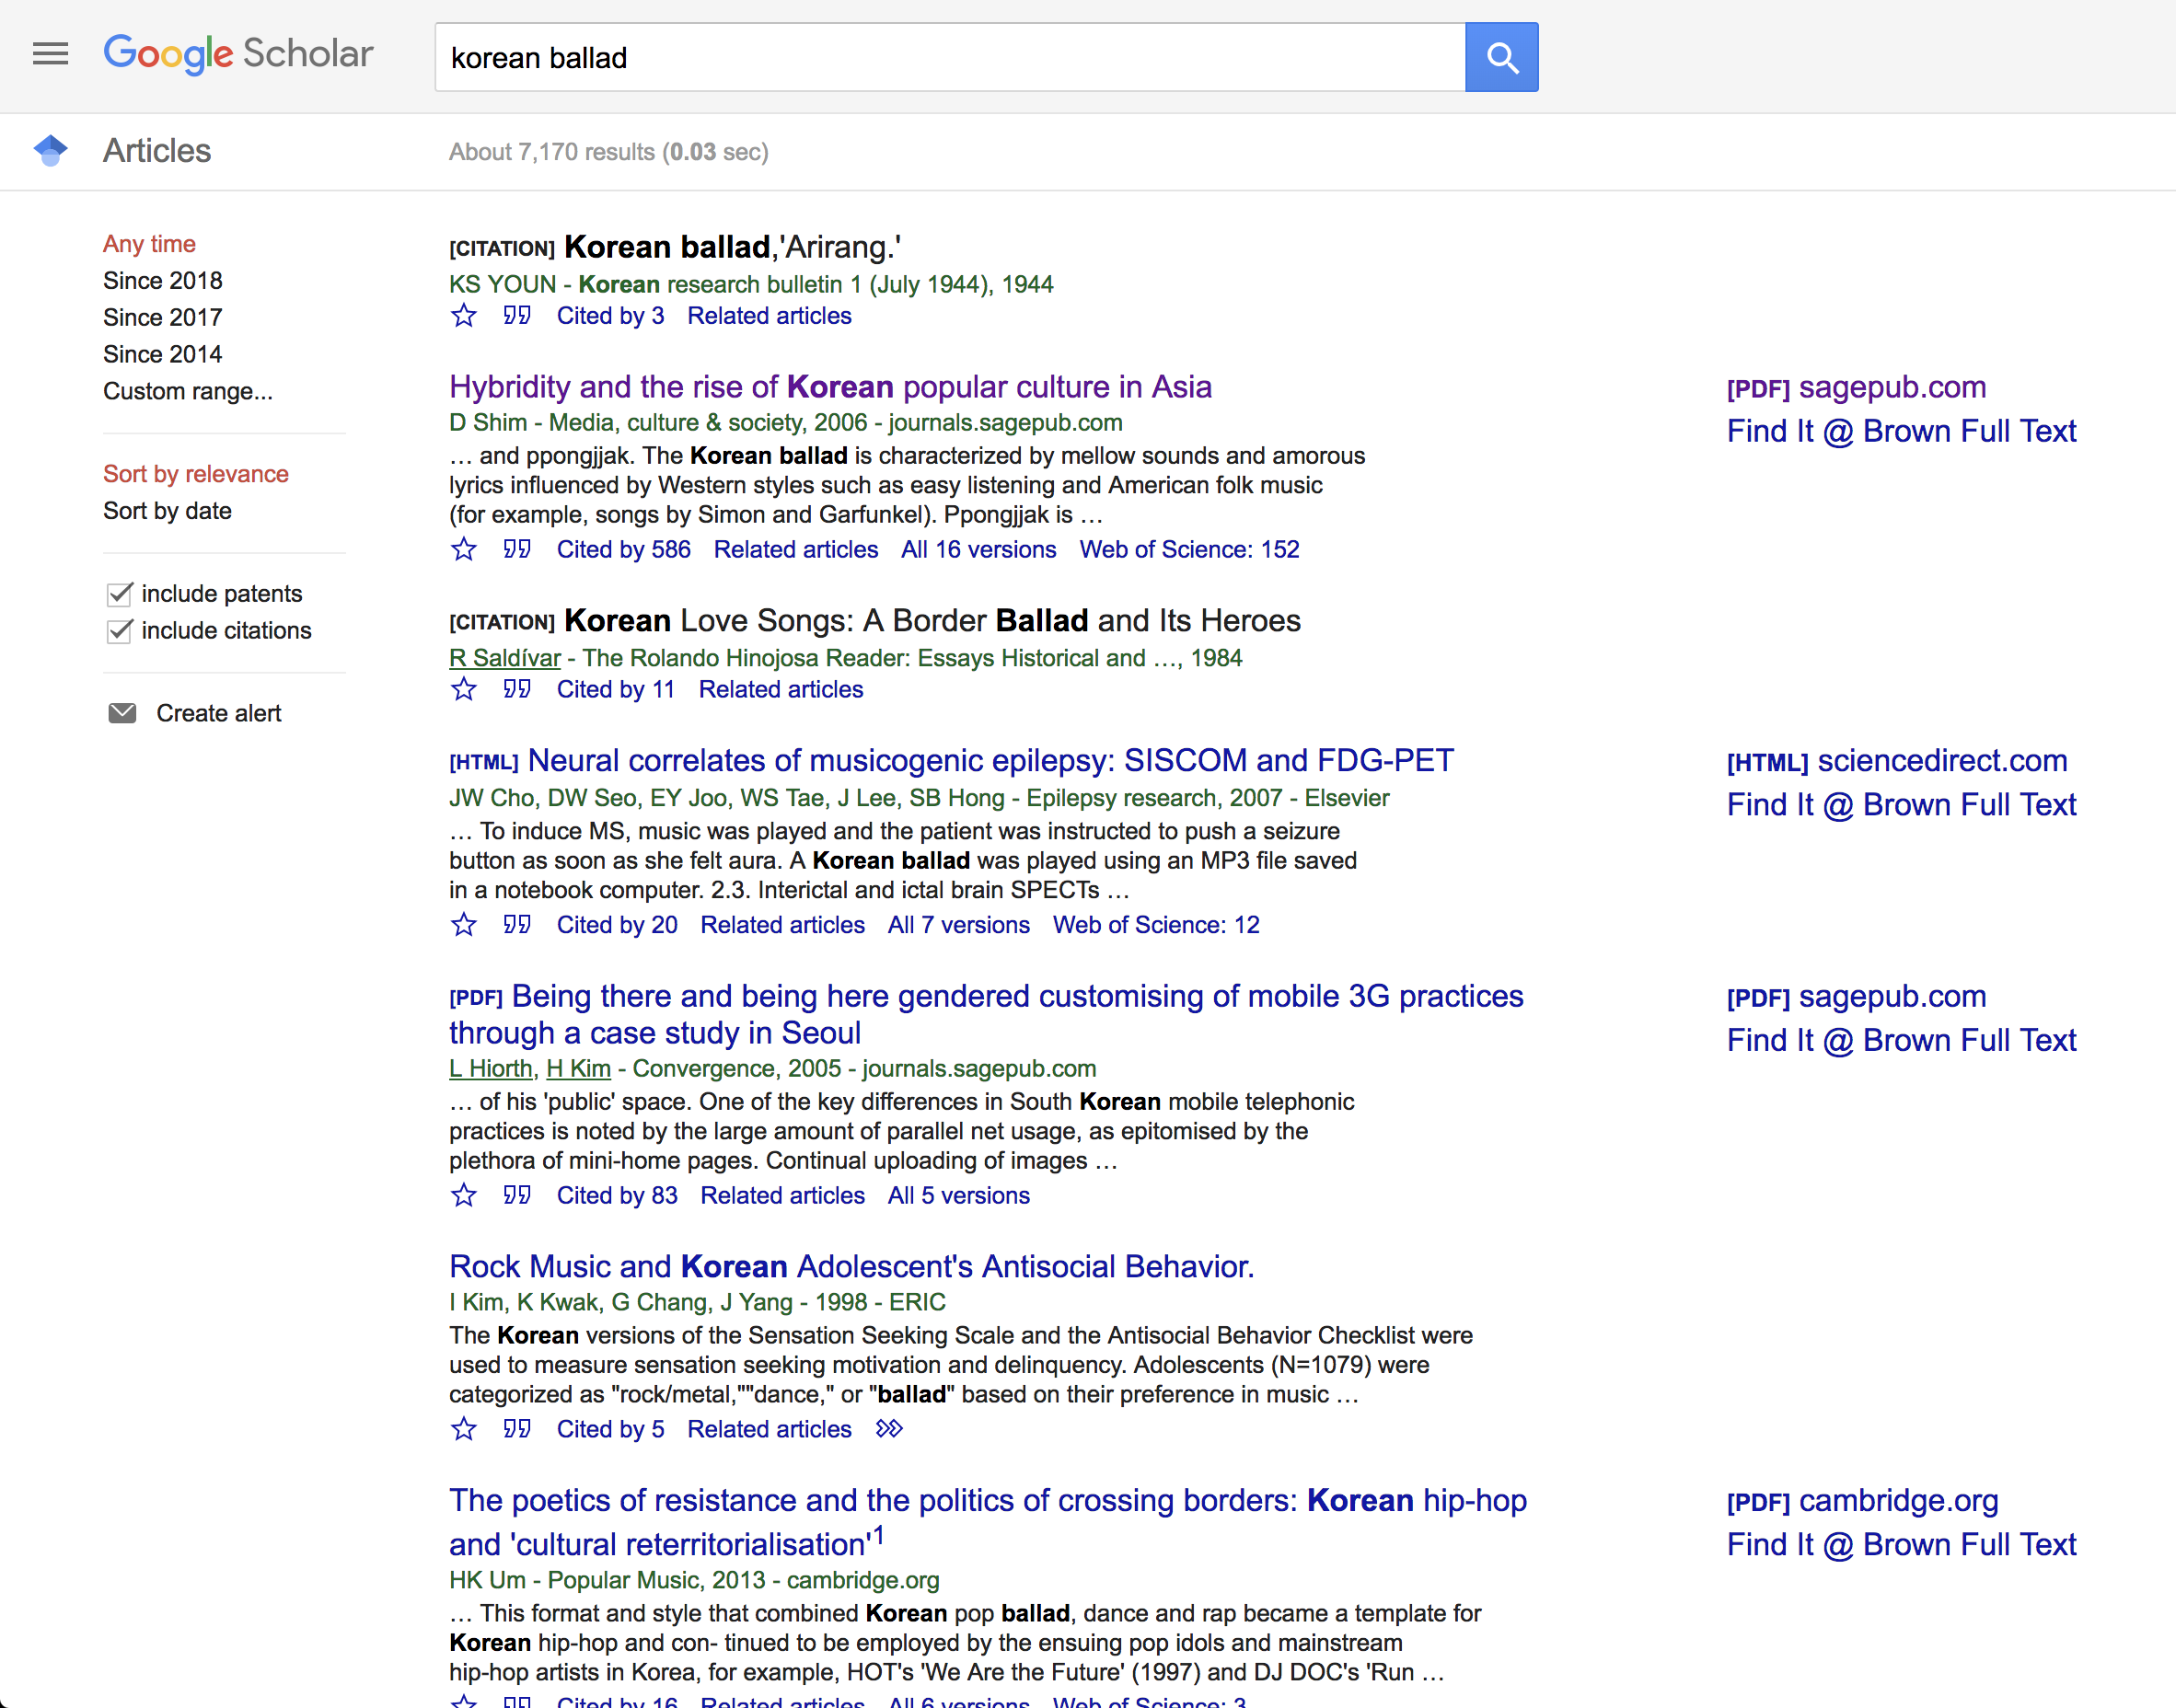 File:Google scholar search example for